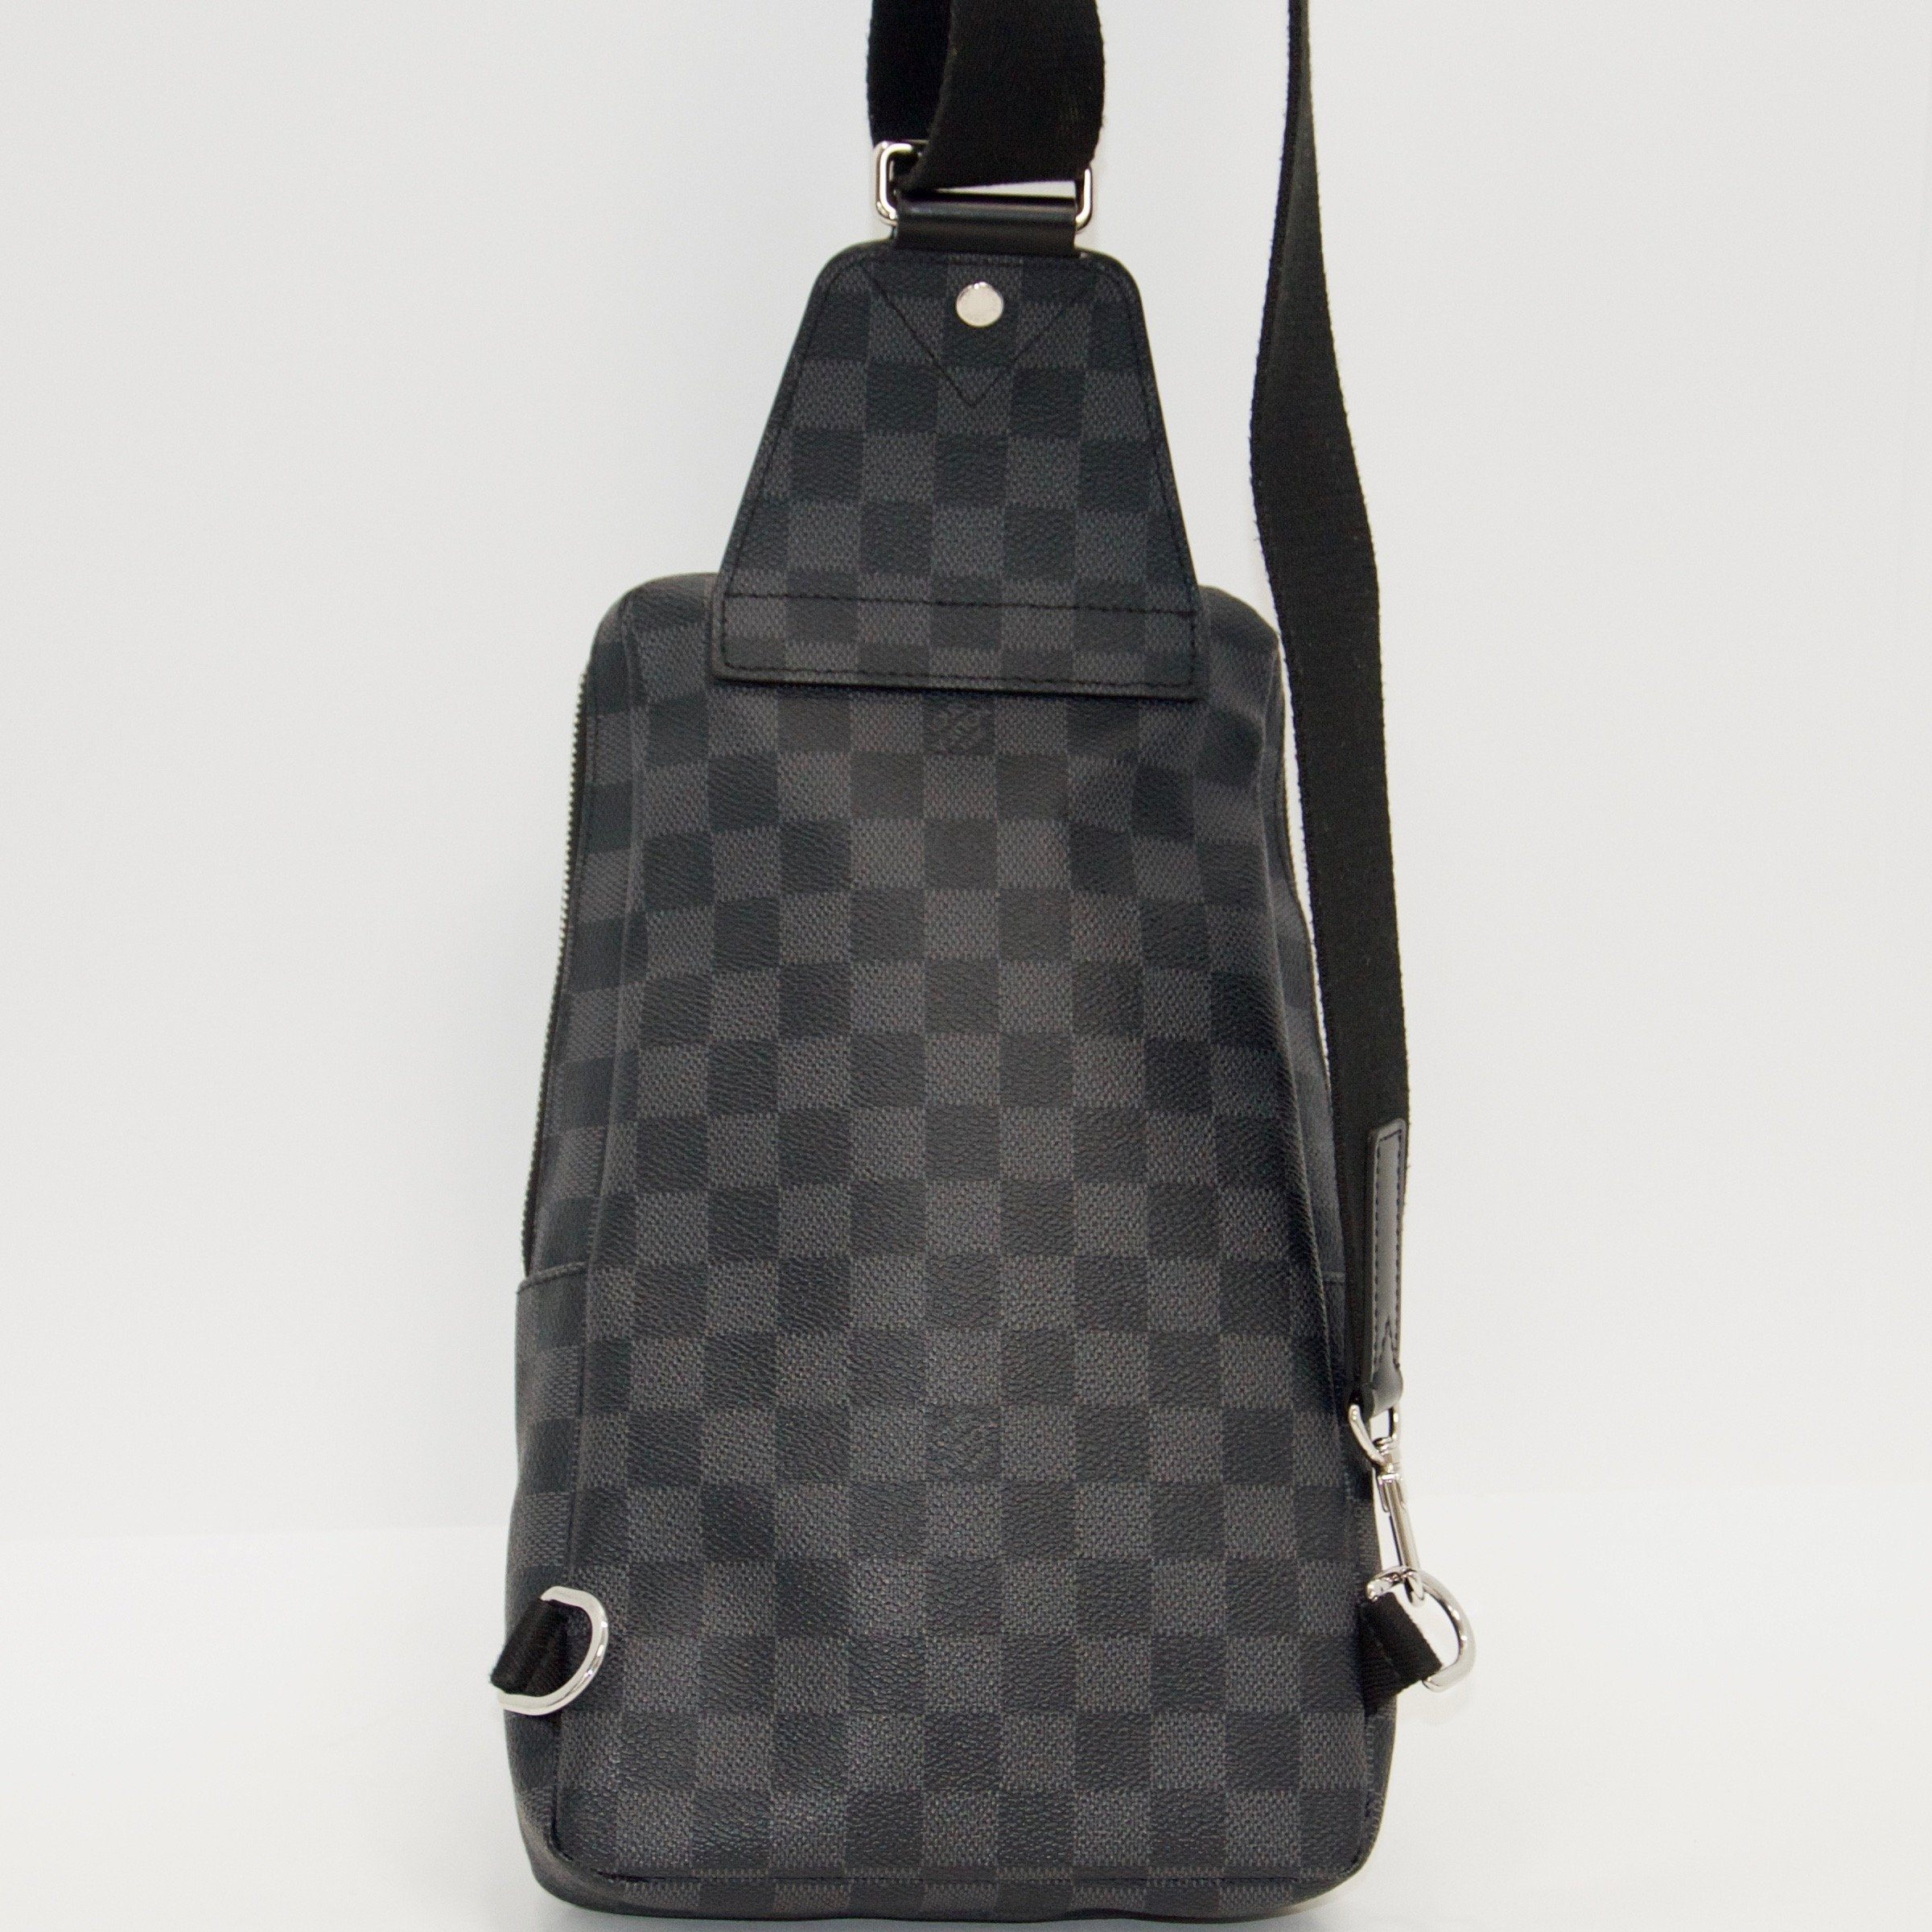 1bb6fb0f6 ... Louis Vuitton Damier Graphite Avenue Sling Bag Bags Louis Vuitton ...